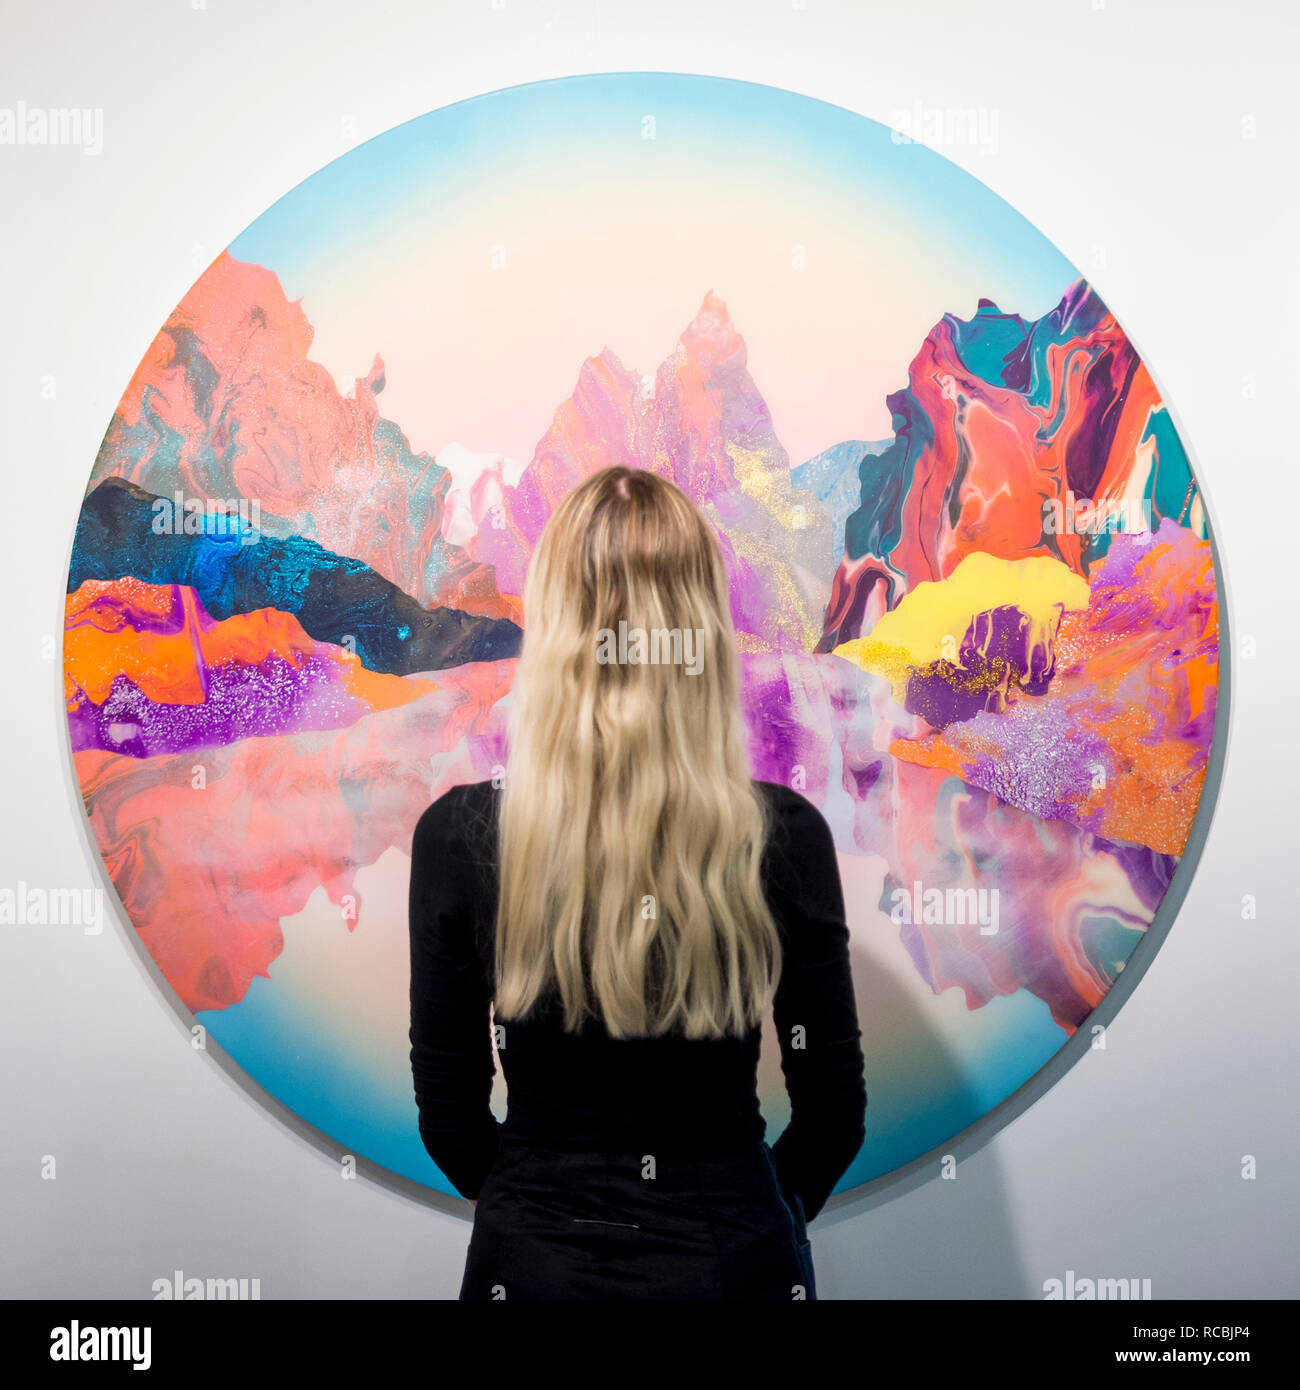 London, UK.  15 January 2019.  A staff member views 'Earth intruders', 2018, by Kate Shaw at the Cube gallery stand.  Preview of London Art Fair 2019 at the Business Design Centre in Islington.  The annual fair showcases exceptional modern and contemporary art from the 20th century to present day and opens 16 to 20 January.  Credit: Stephen Chung / Alamy Live News - Stock Image